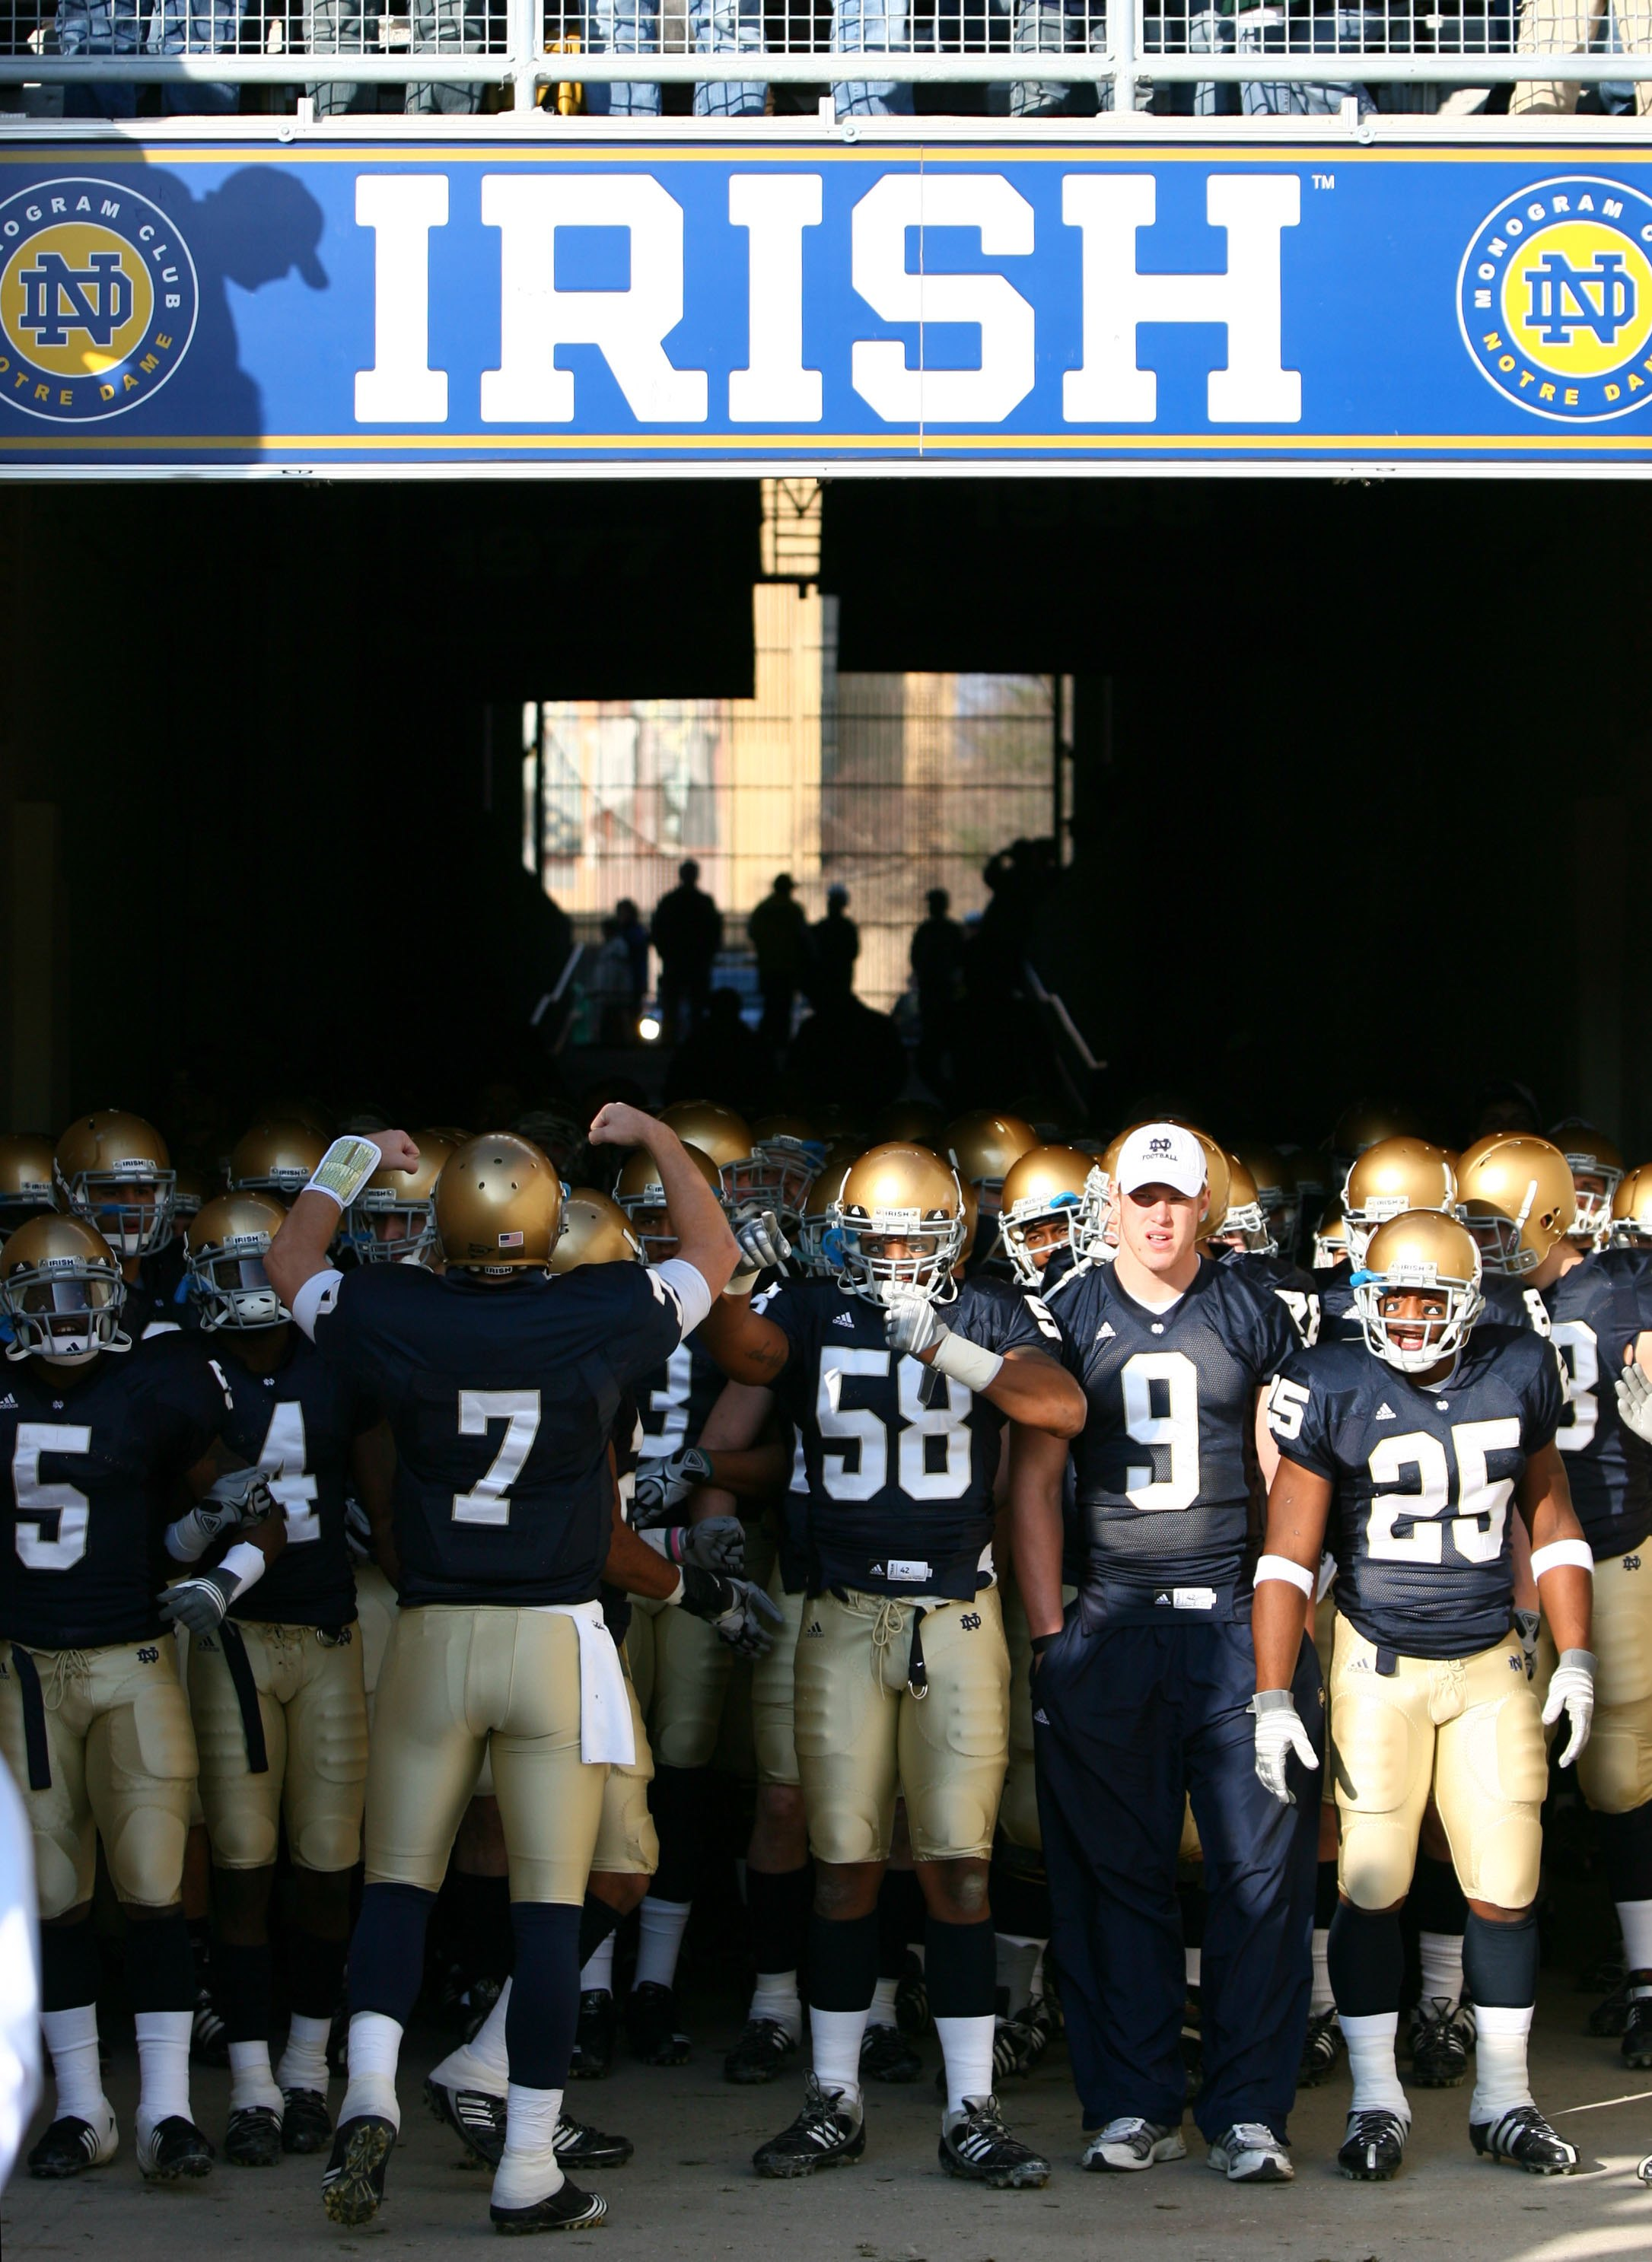 Notre Dame Football Jimmy Clausen And The 10 Best Players Of The Past Decade Bleacher Report Latest News Videos And Highlights